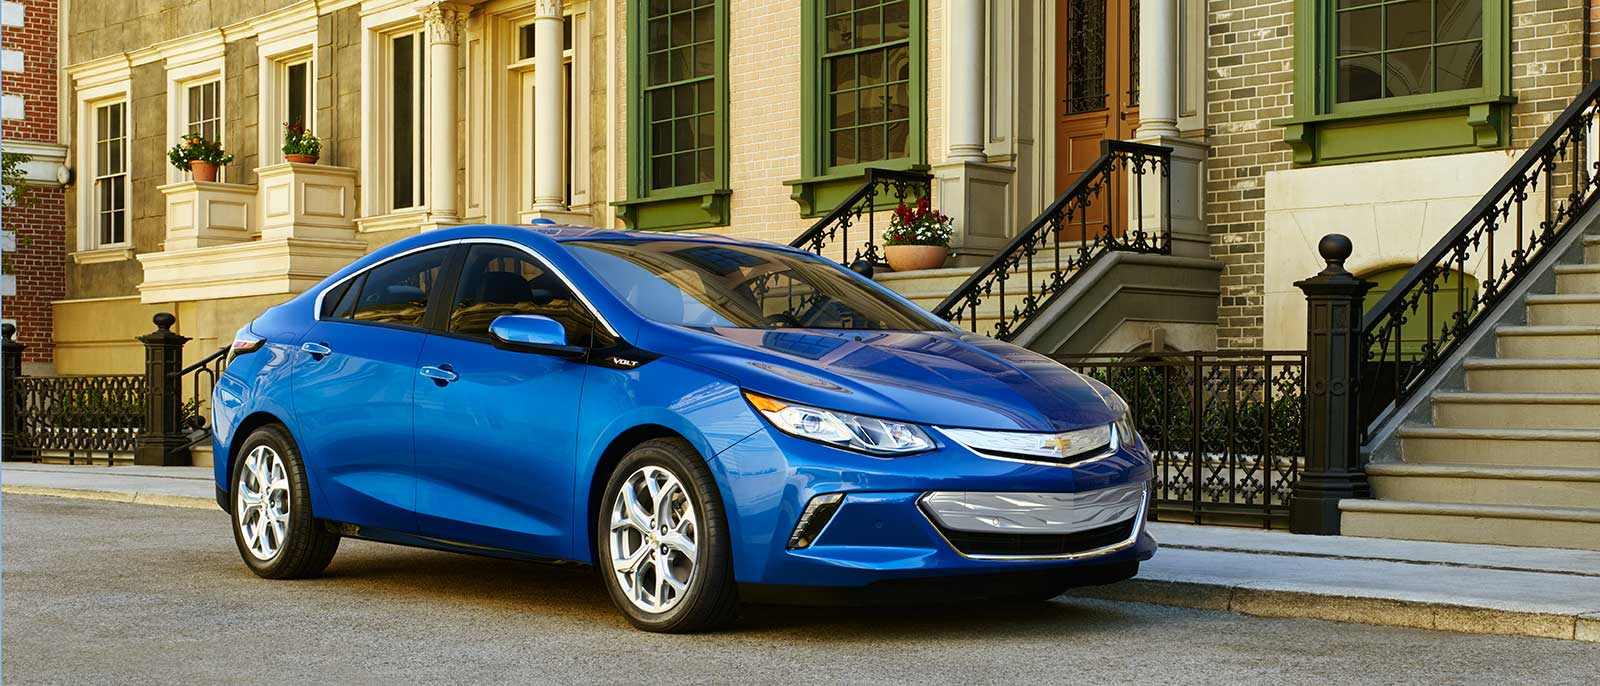 2017 Chevrolet Volt in front of townhouses